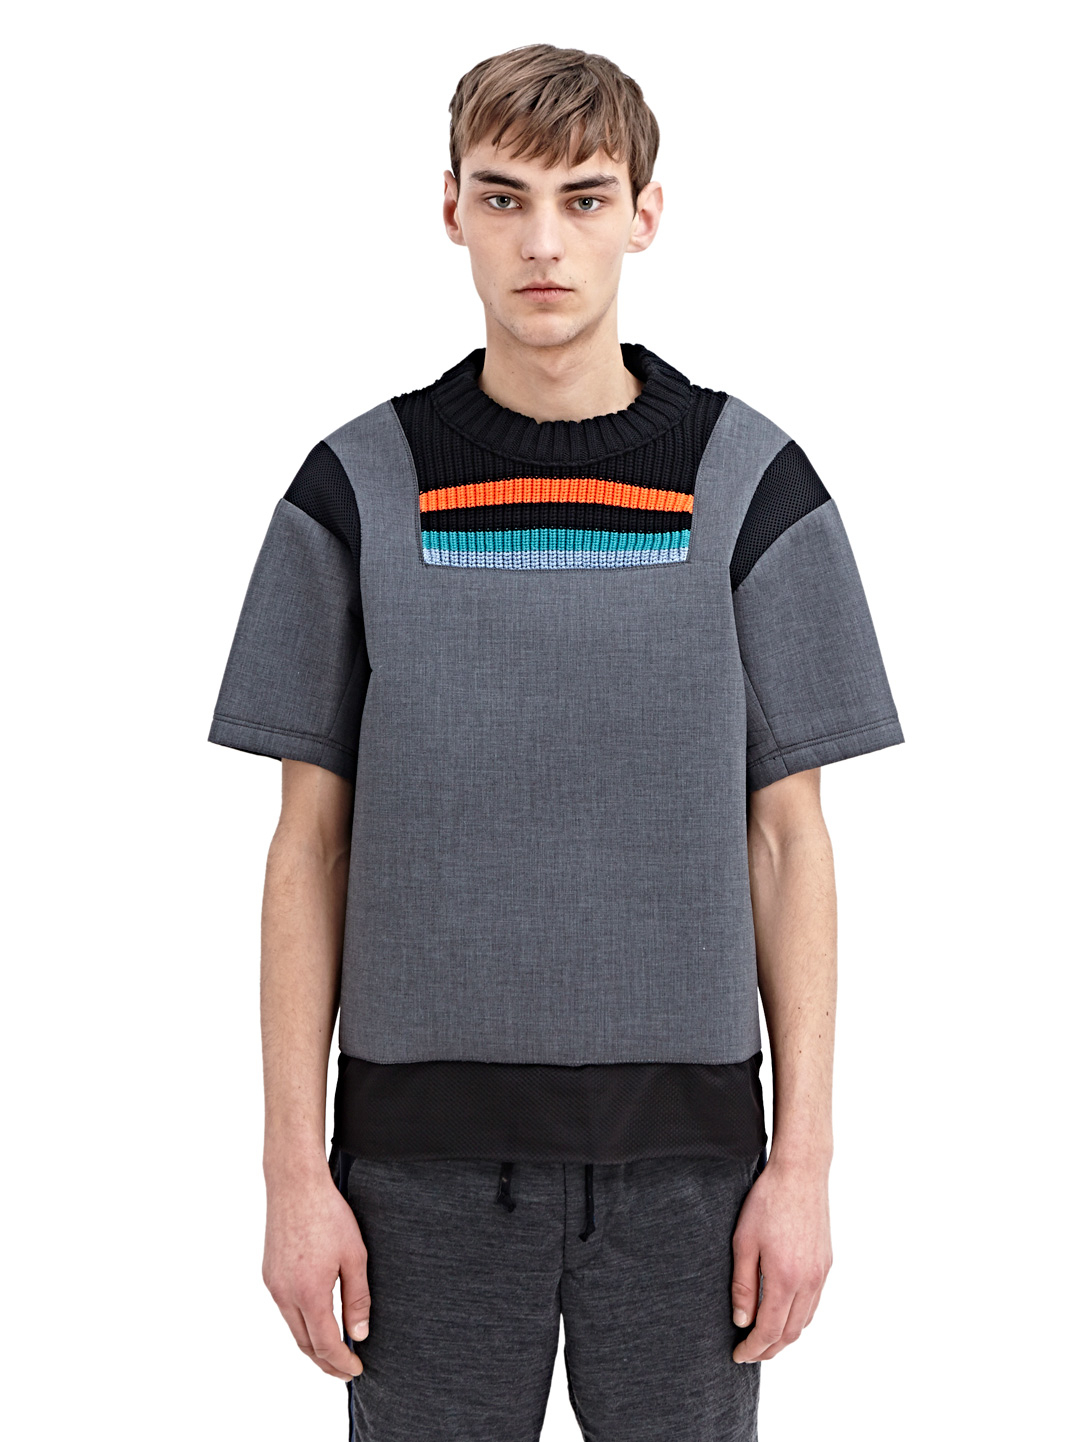 lyst kolor mens high tech crew neck t shirt in gray for men